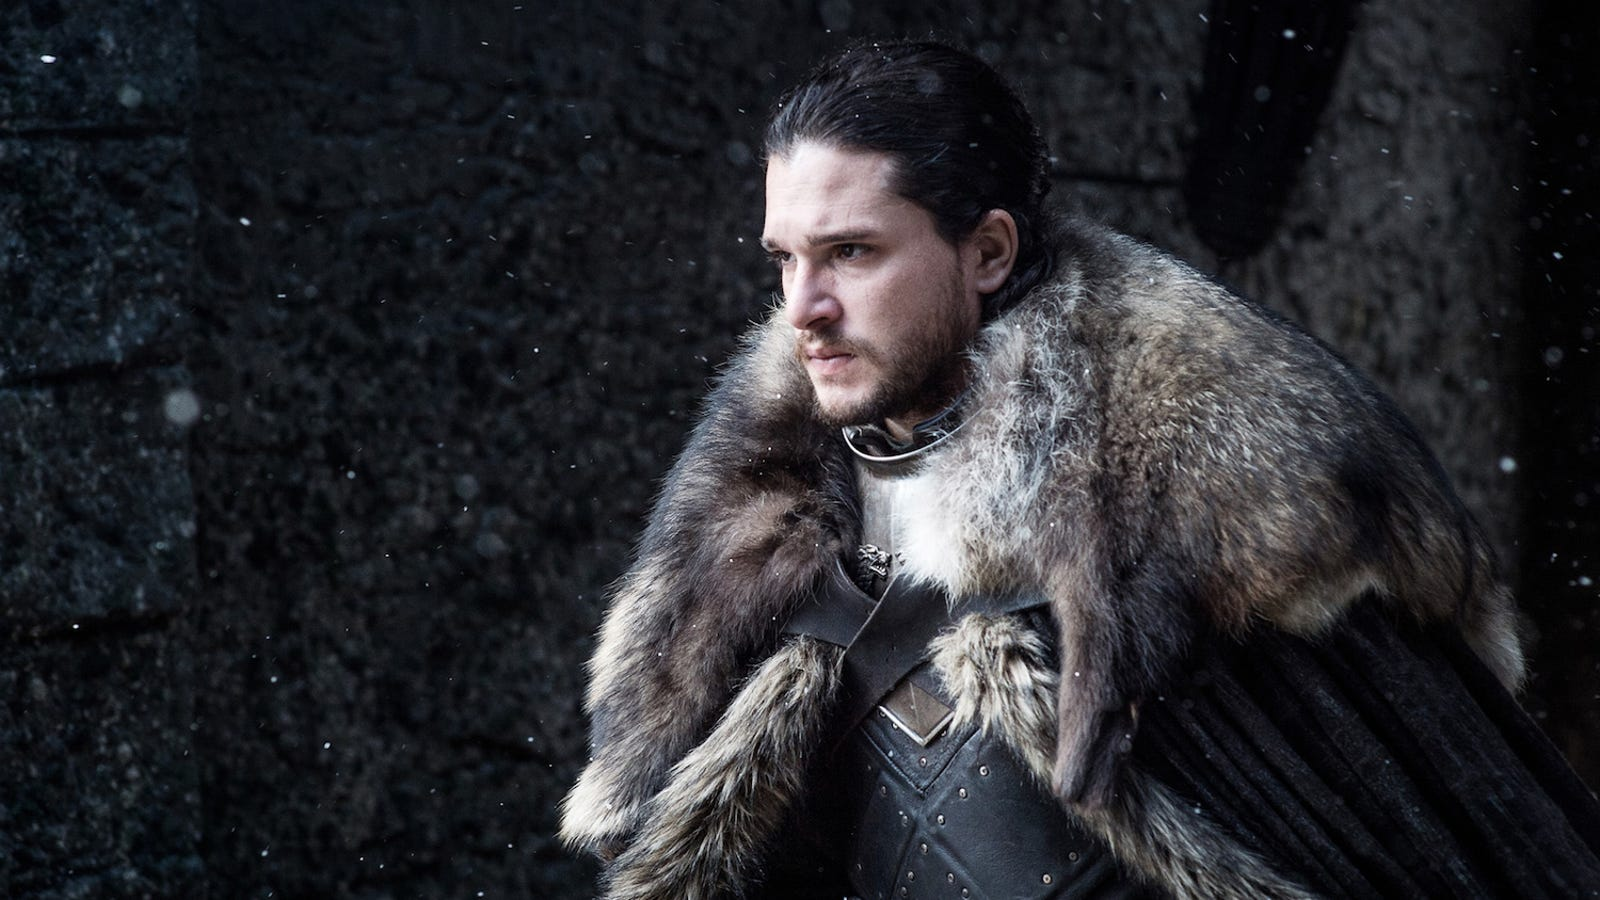 This Gorgeous Game of Thrones Fan Video Compiles Seven Seasons of Hints About Jon Snow's Lineage